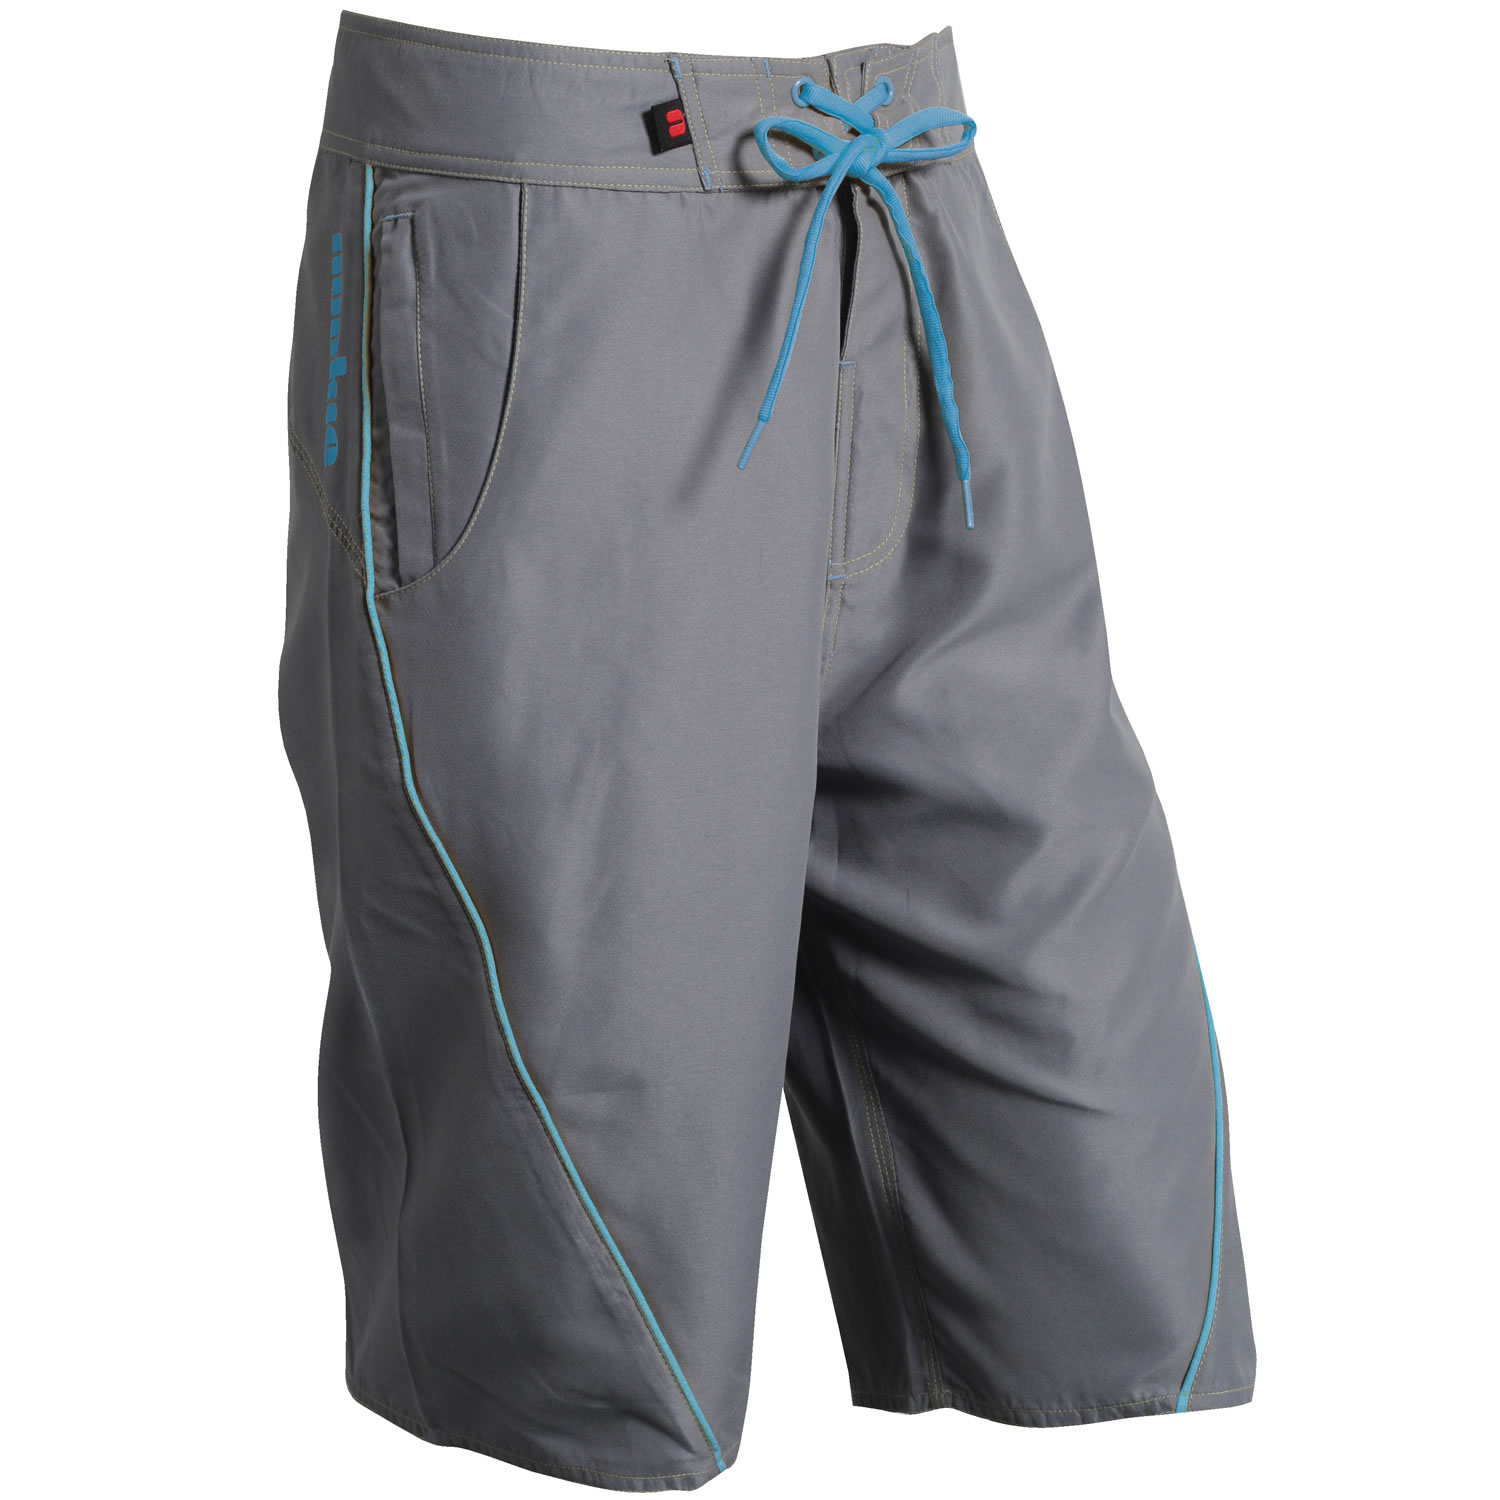 Nookie Board Shorts Grey/Blue